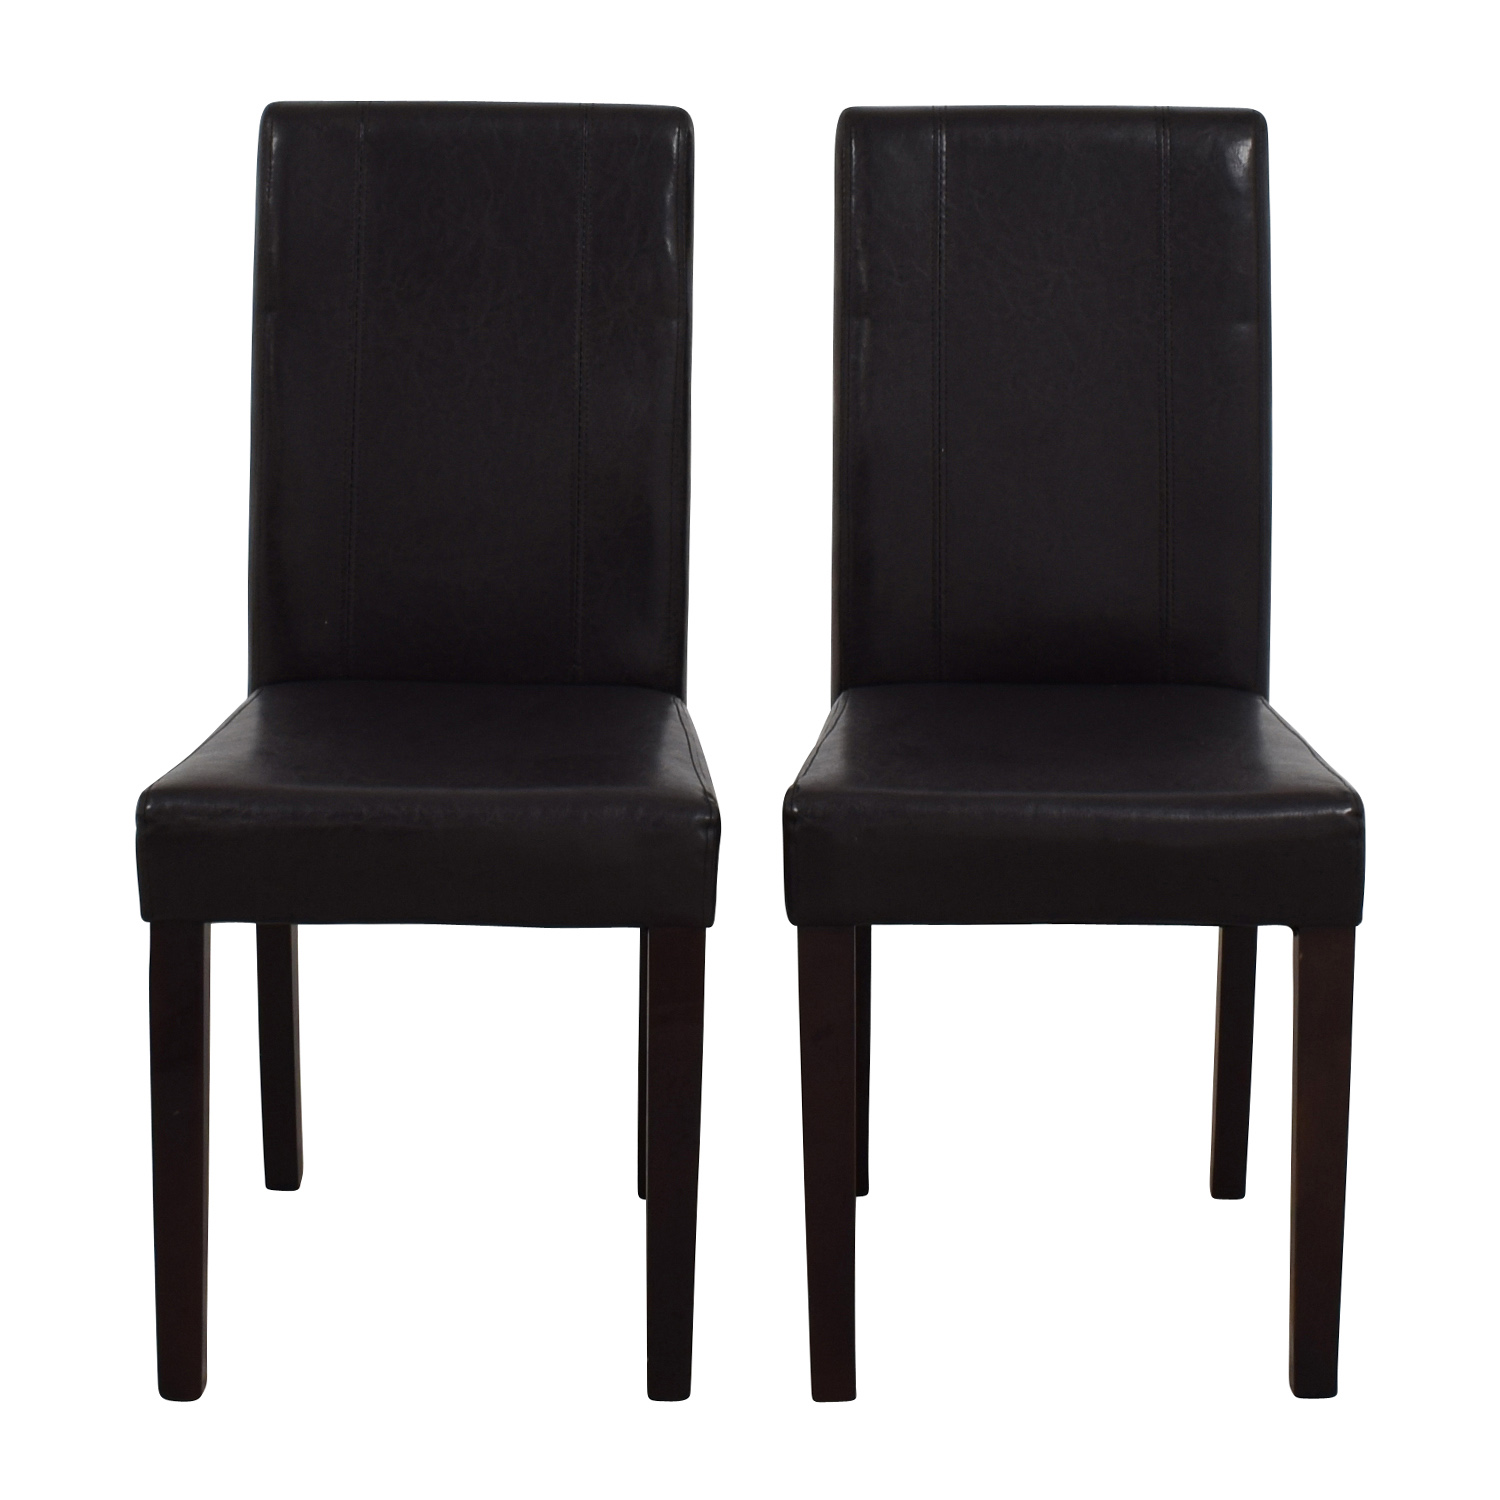 Roundhill Roundhill Solid Wood Leatherette Padded Parson Chairs Chairs